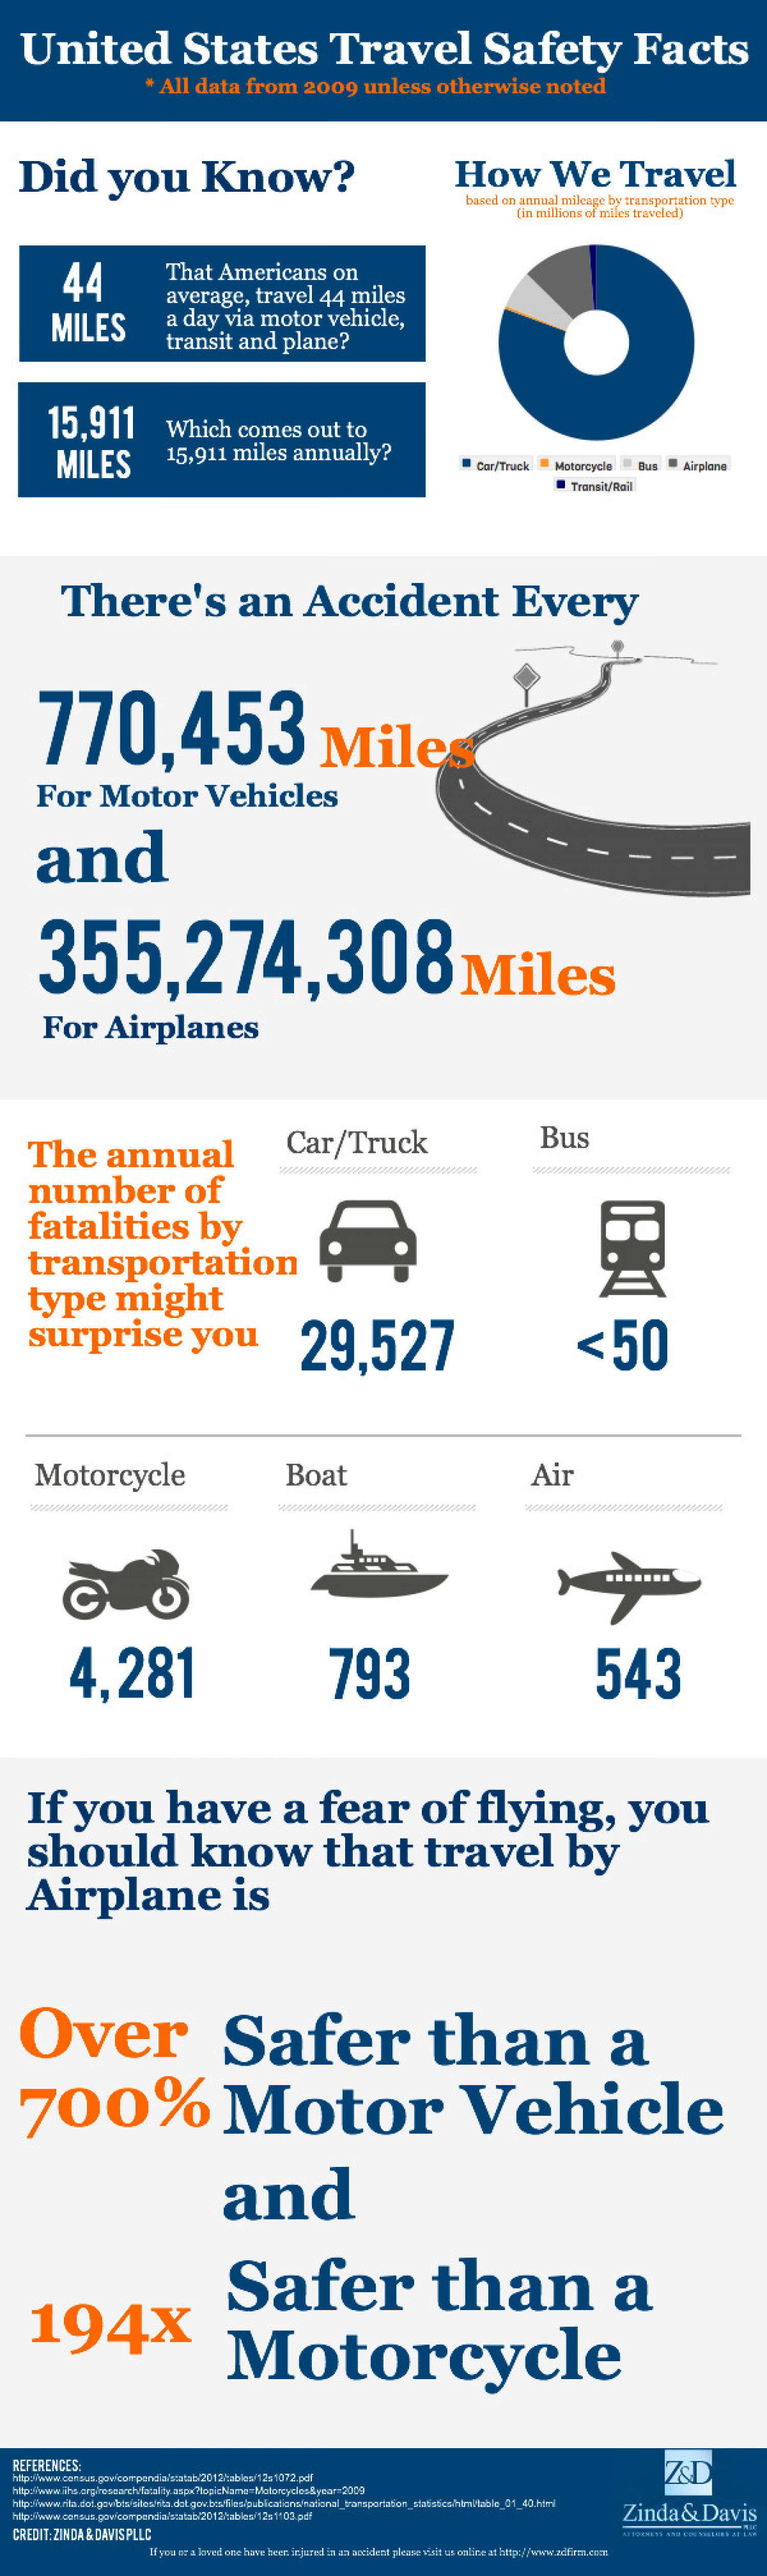 United States Travel Safety Facts Infographic